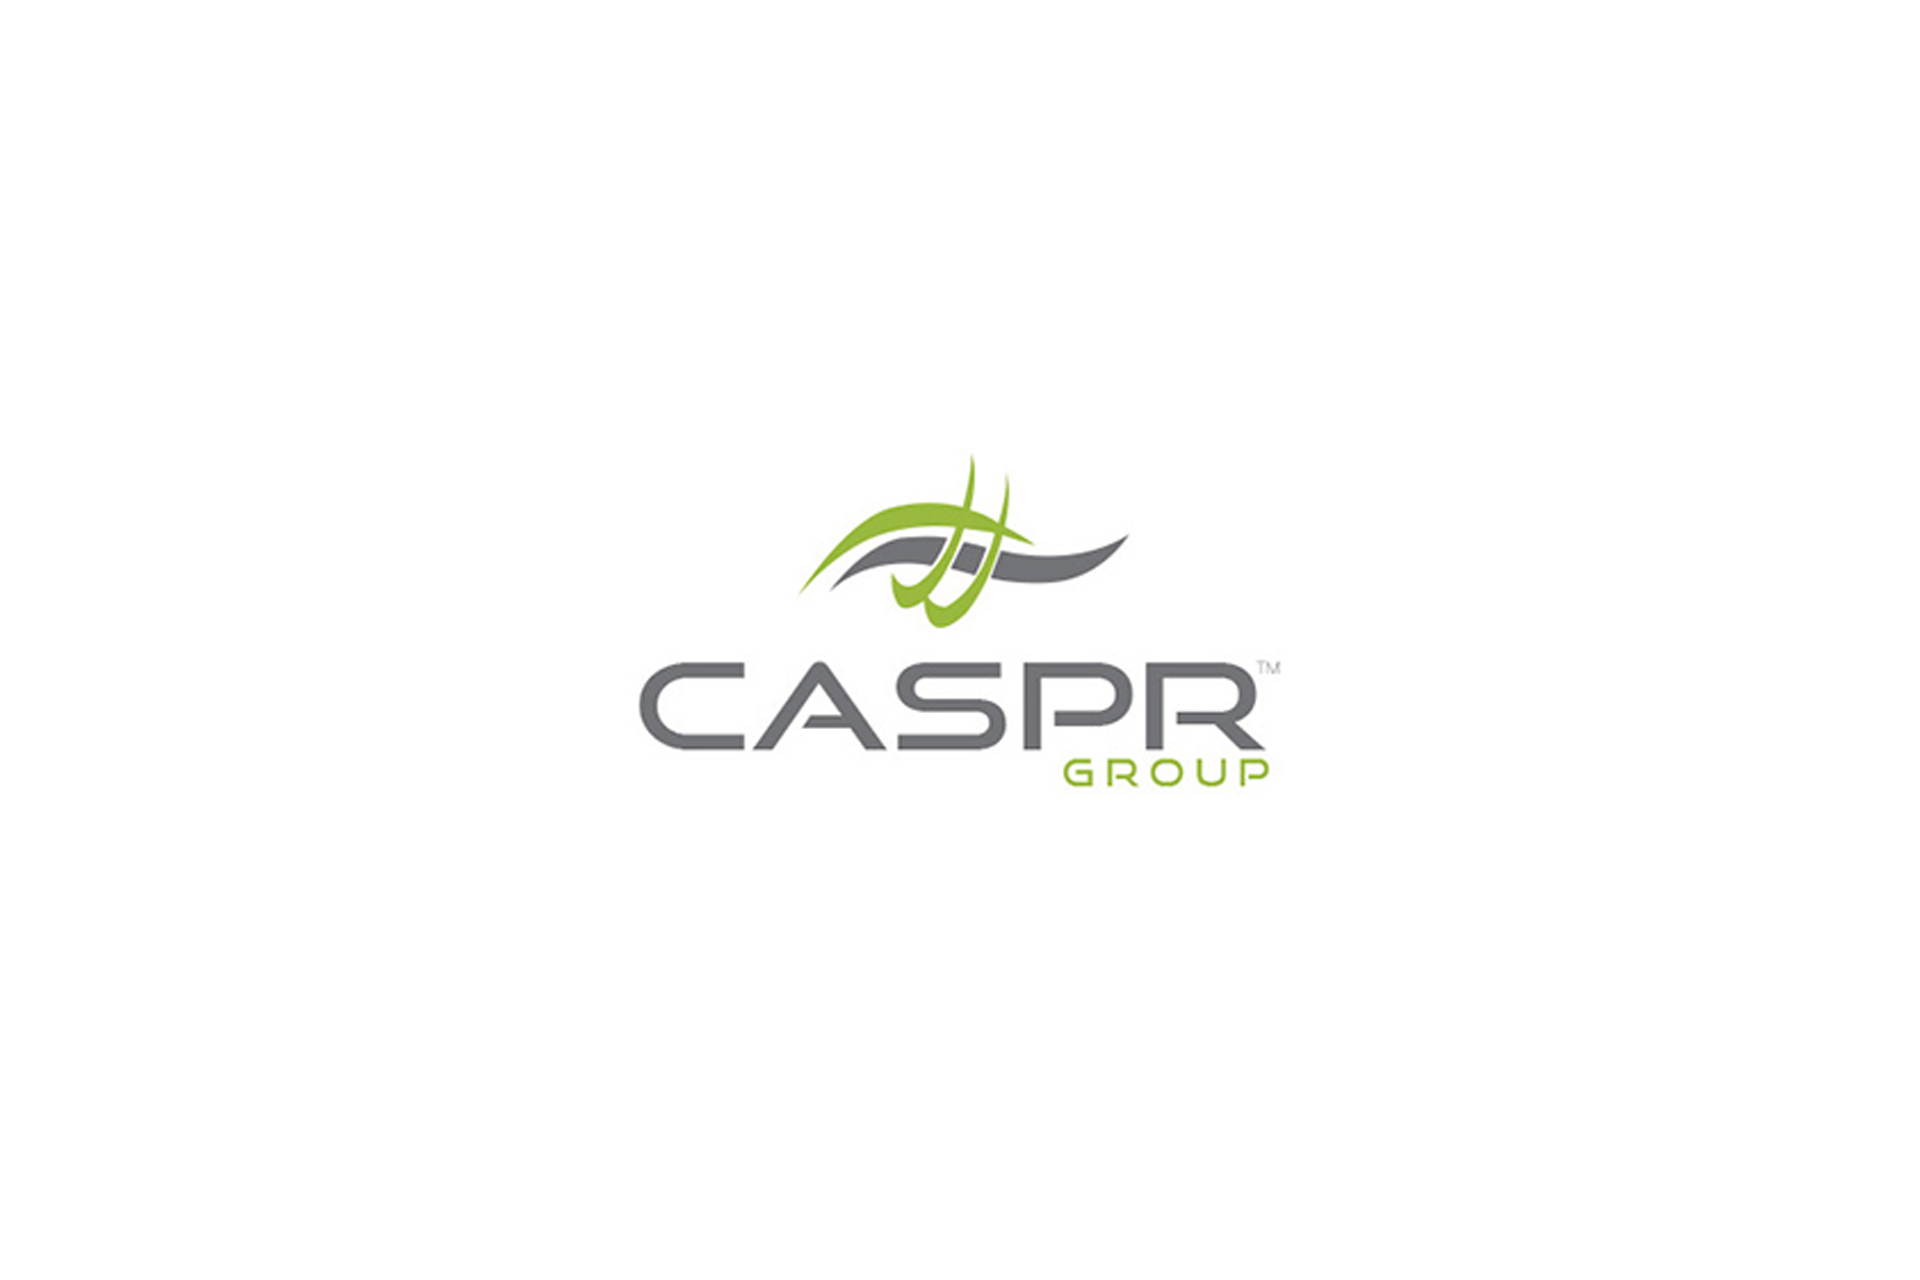 CASPR Group